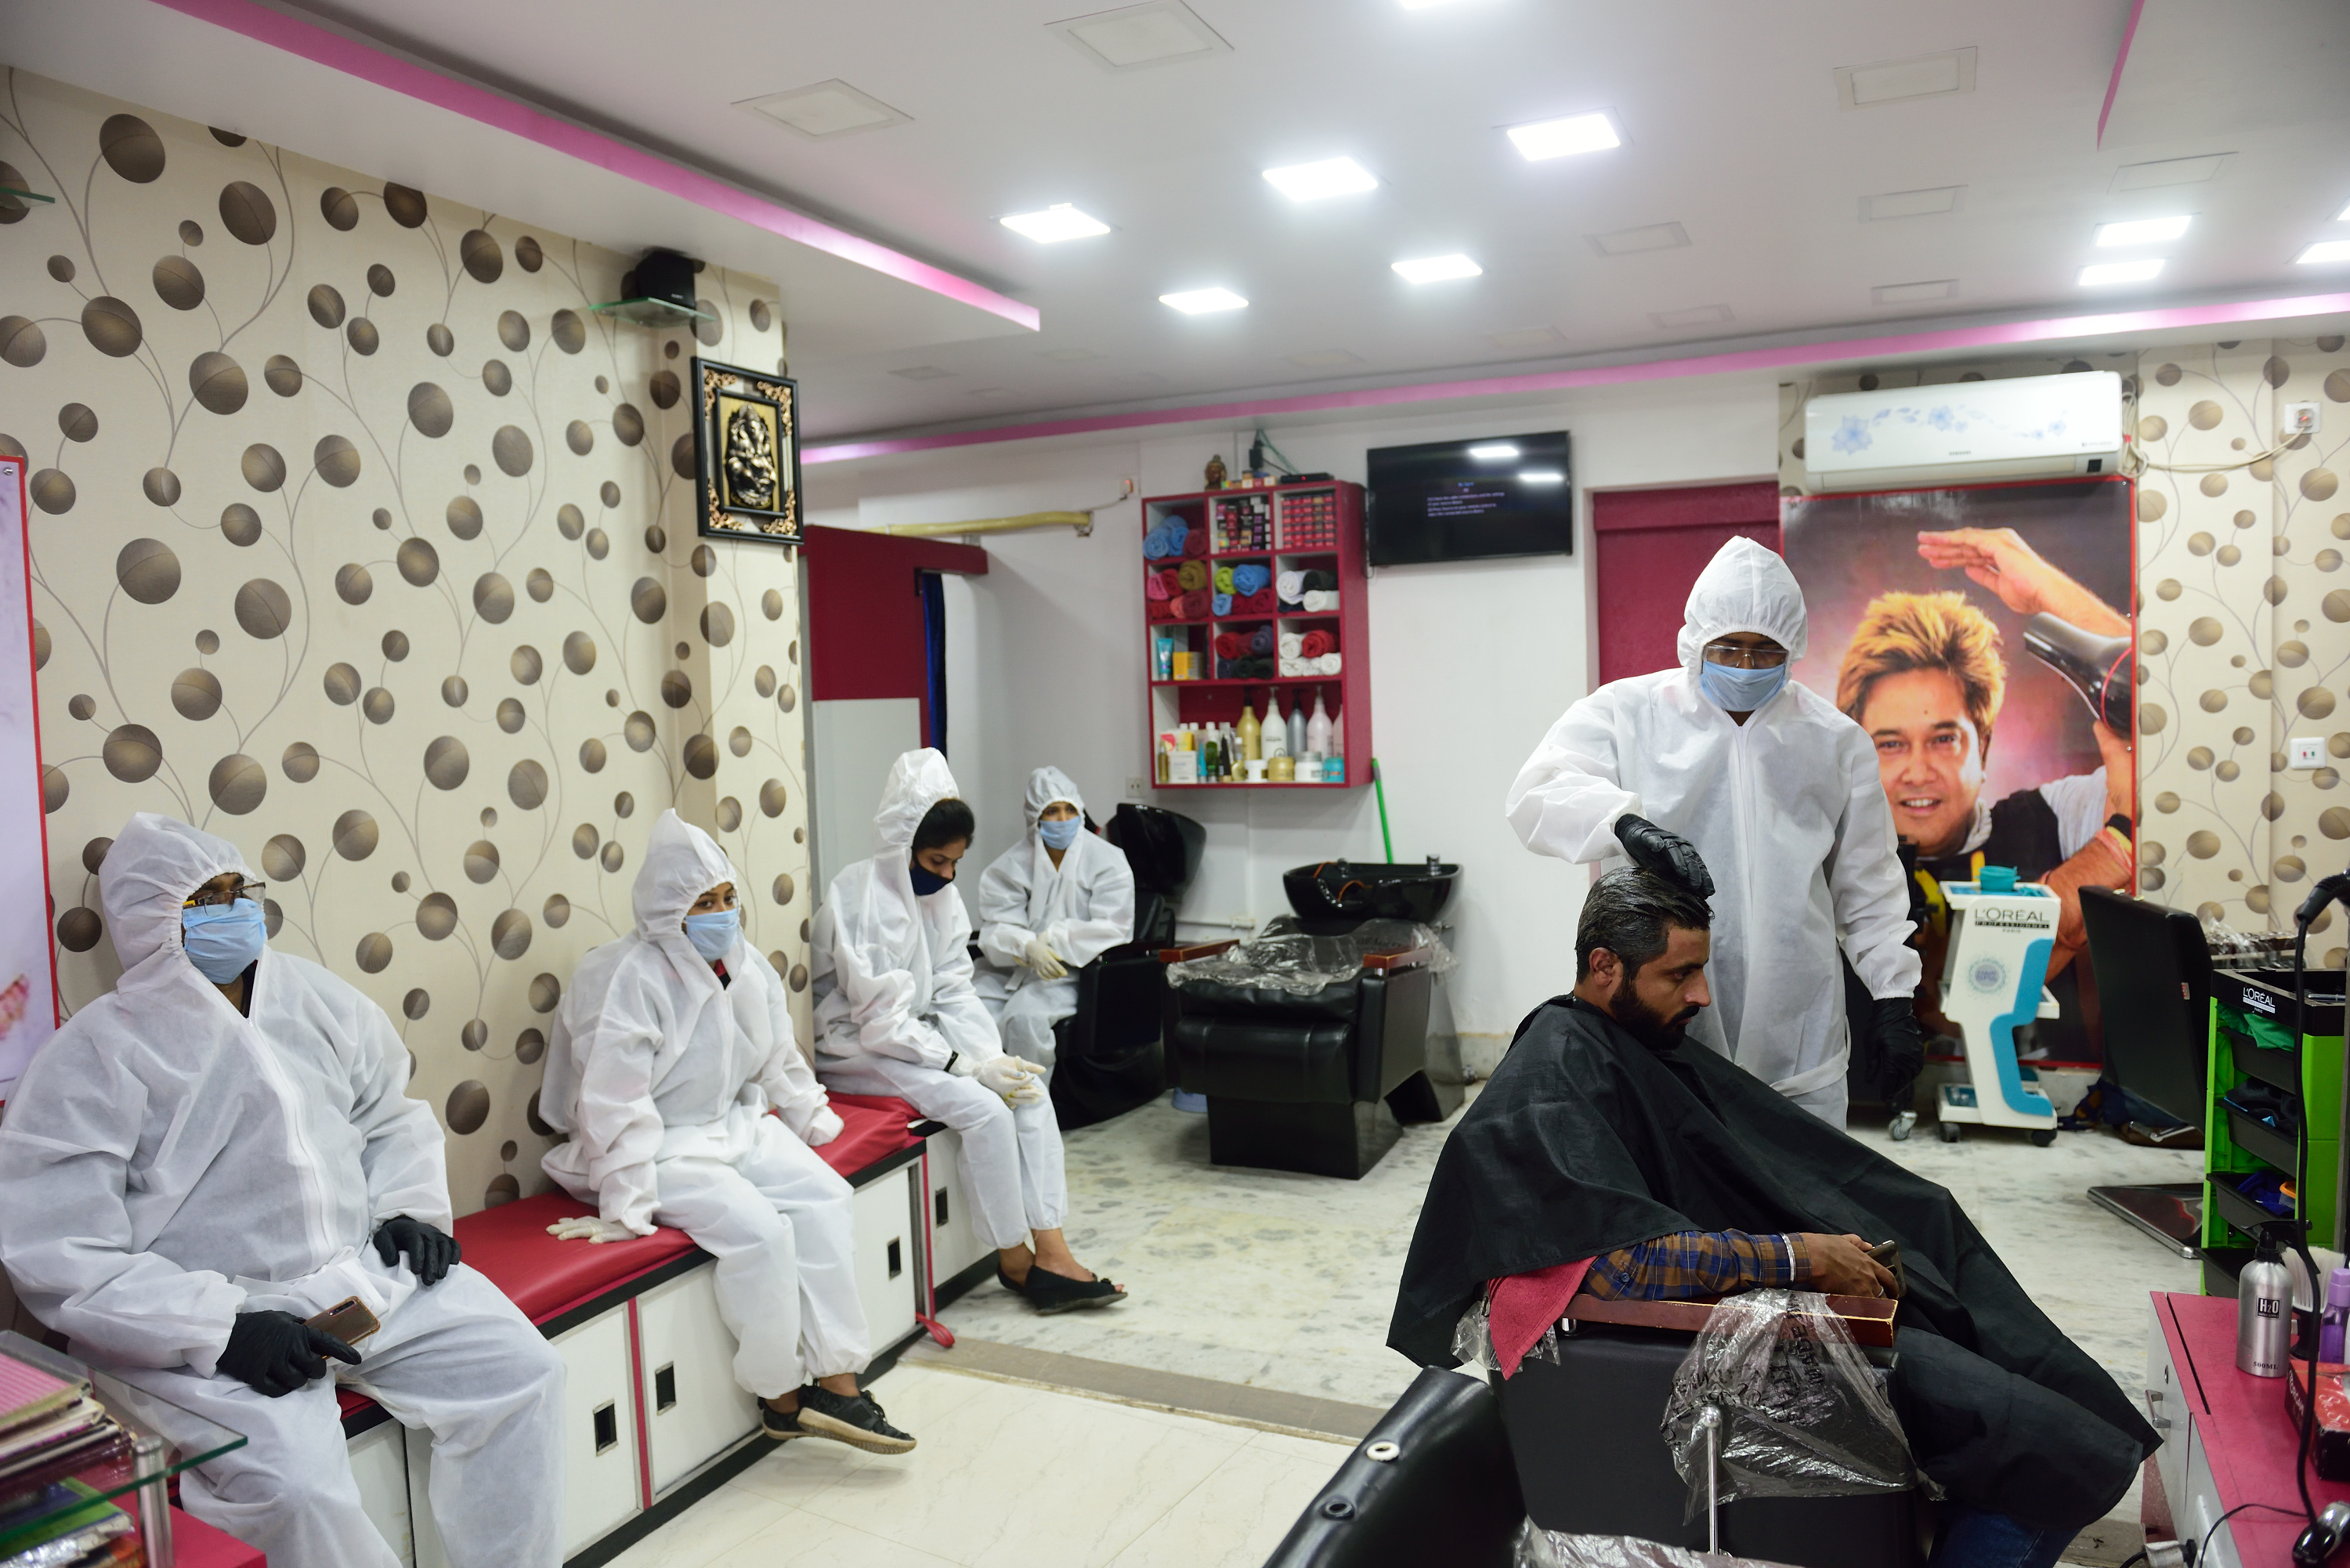 A hairdresser wearing protective gear as preventive measure cuts a client's hair amid coronavirus crisis. India today surpassed Italy to become the sixth heaviest country by the number of confirmed cases. (Photo by Sumit Sanyal / SOPA Images/Sipa USA)